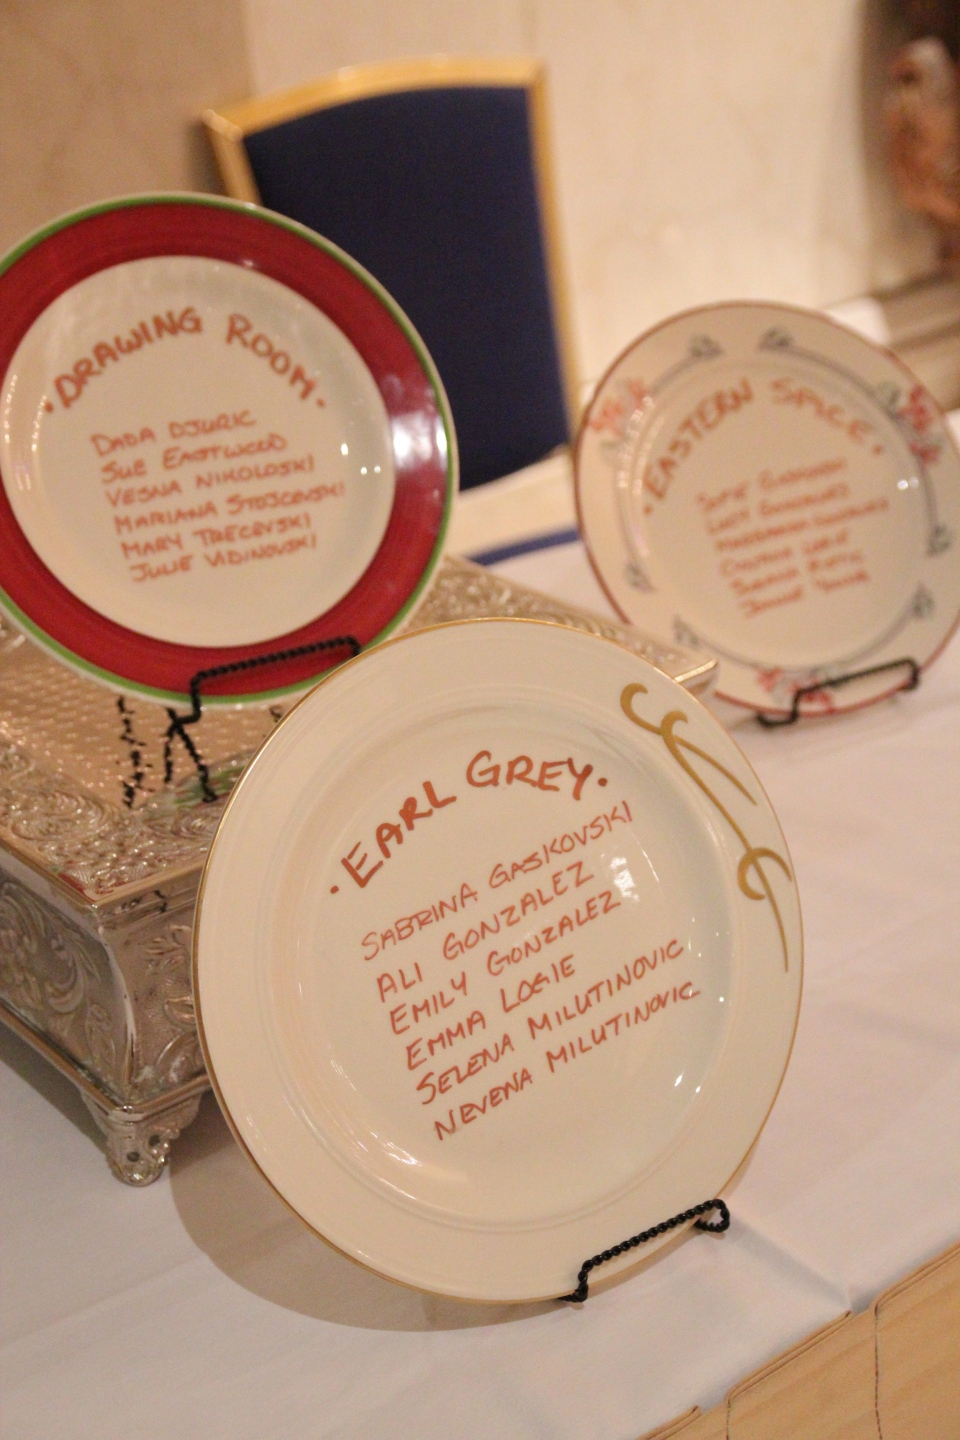 Table settings were listed on ceramic plates